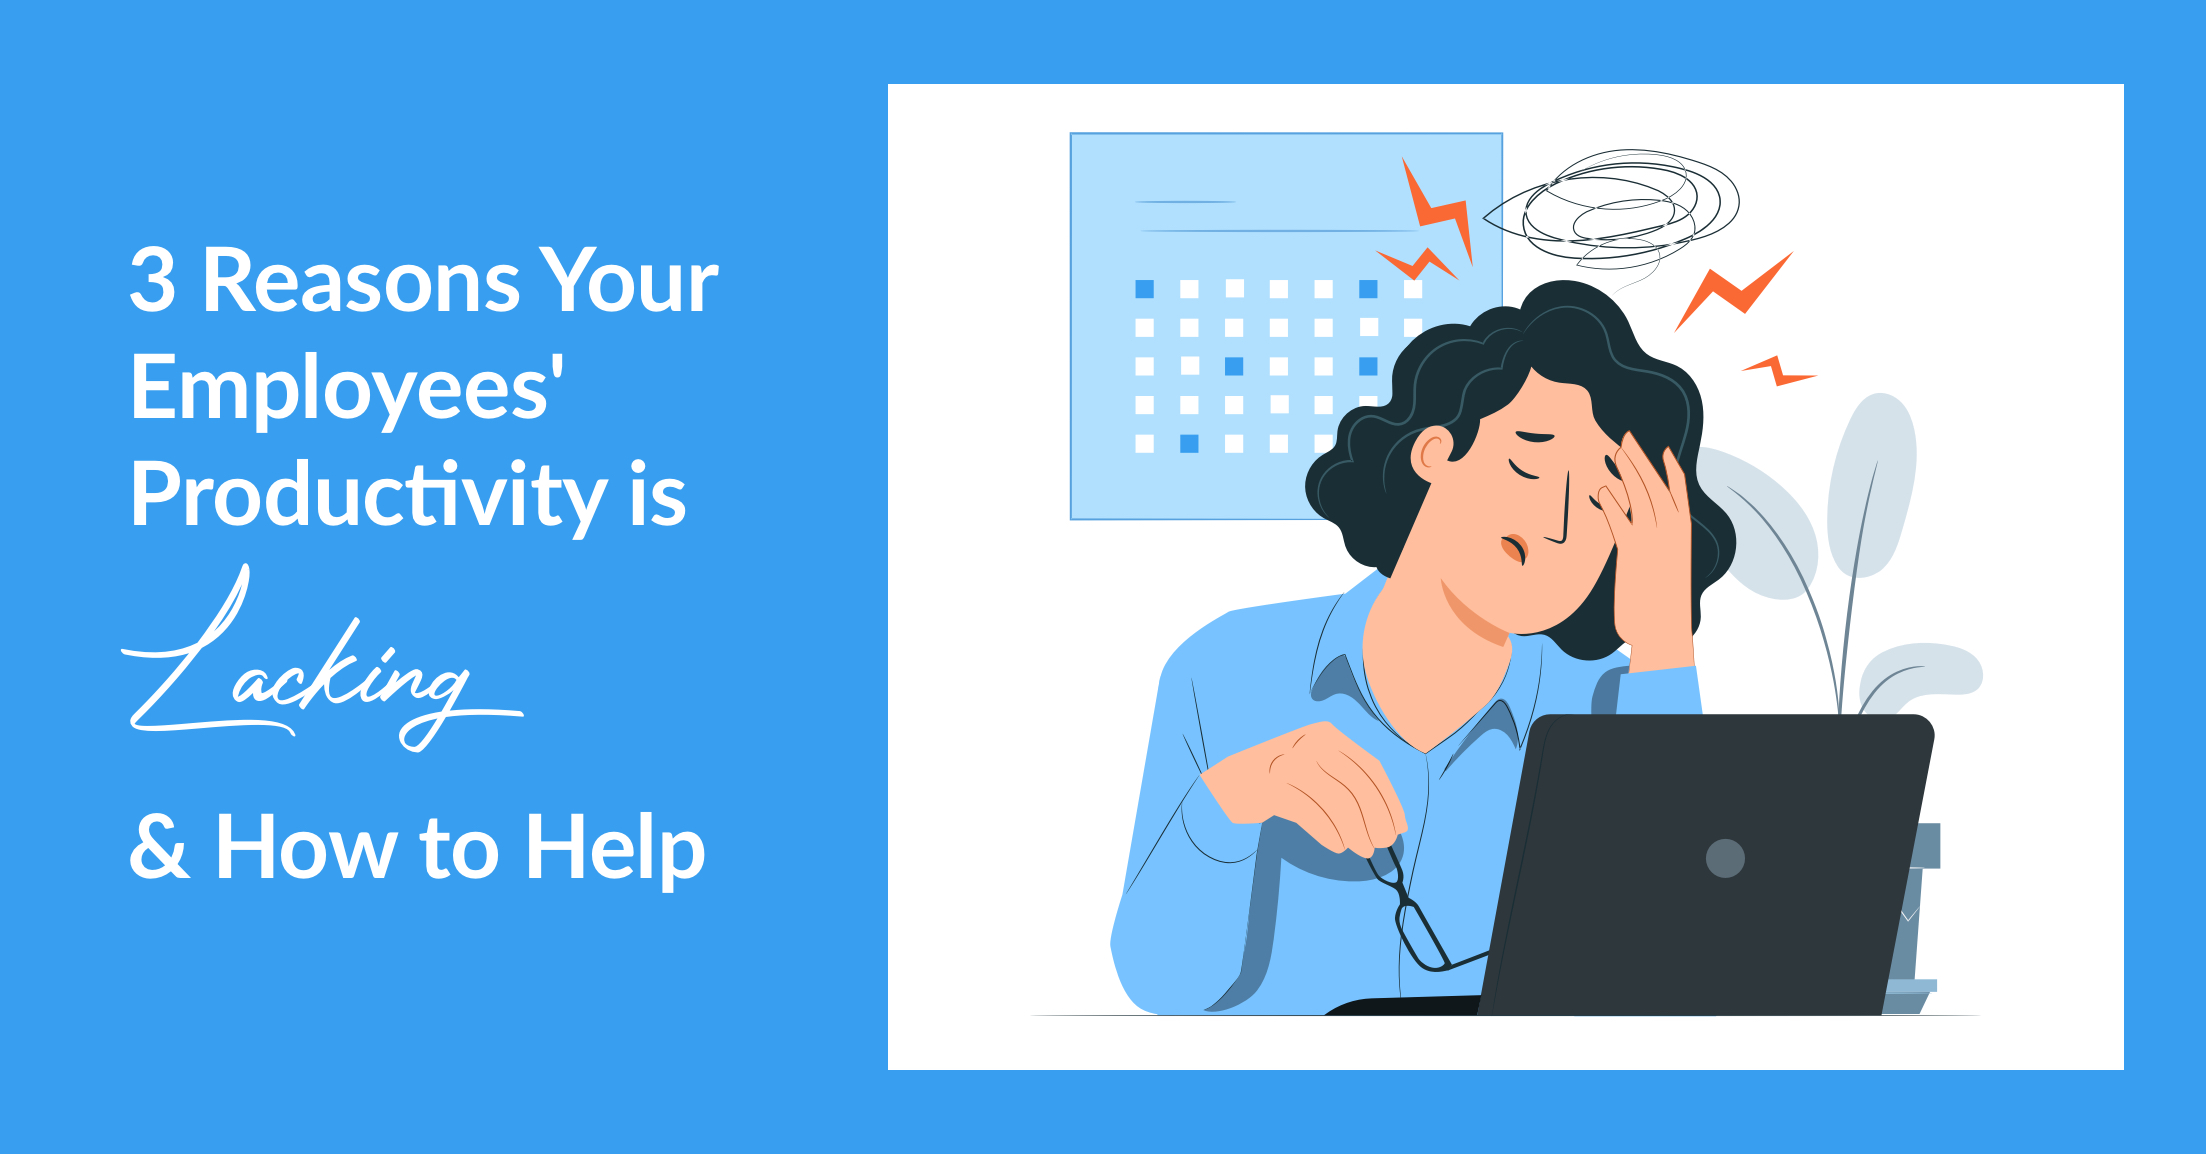 3 Reasons Your Employees' Productivity is Lacking and How to Help